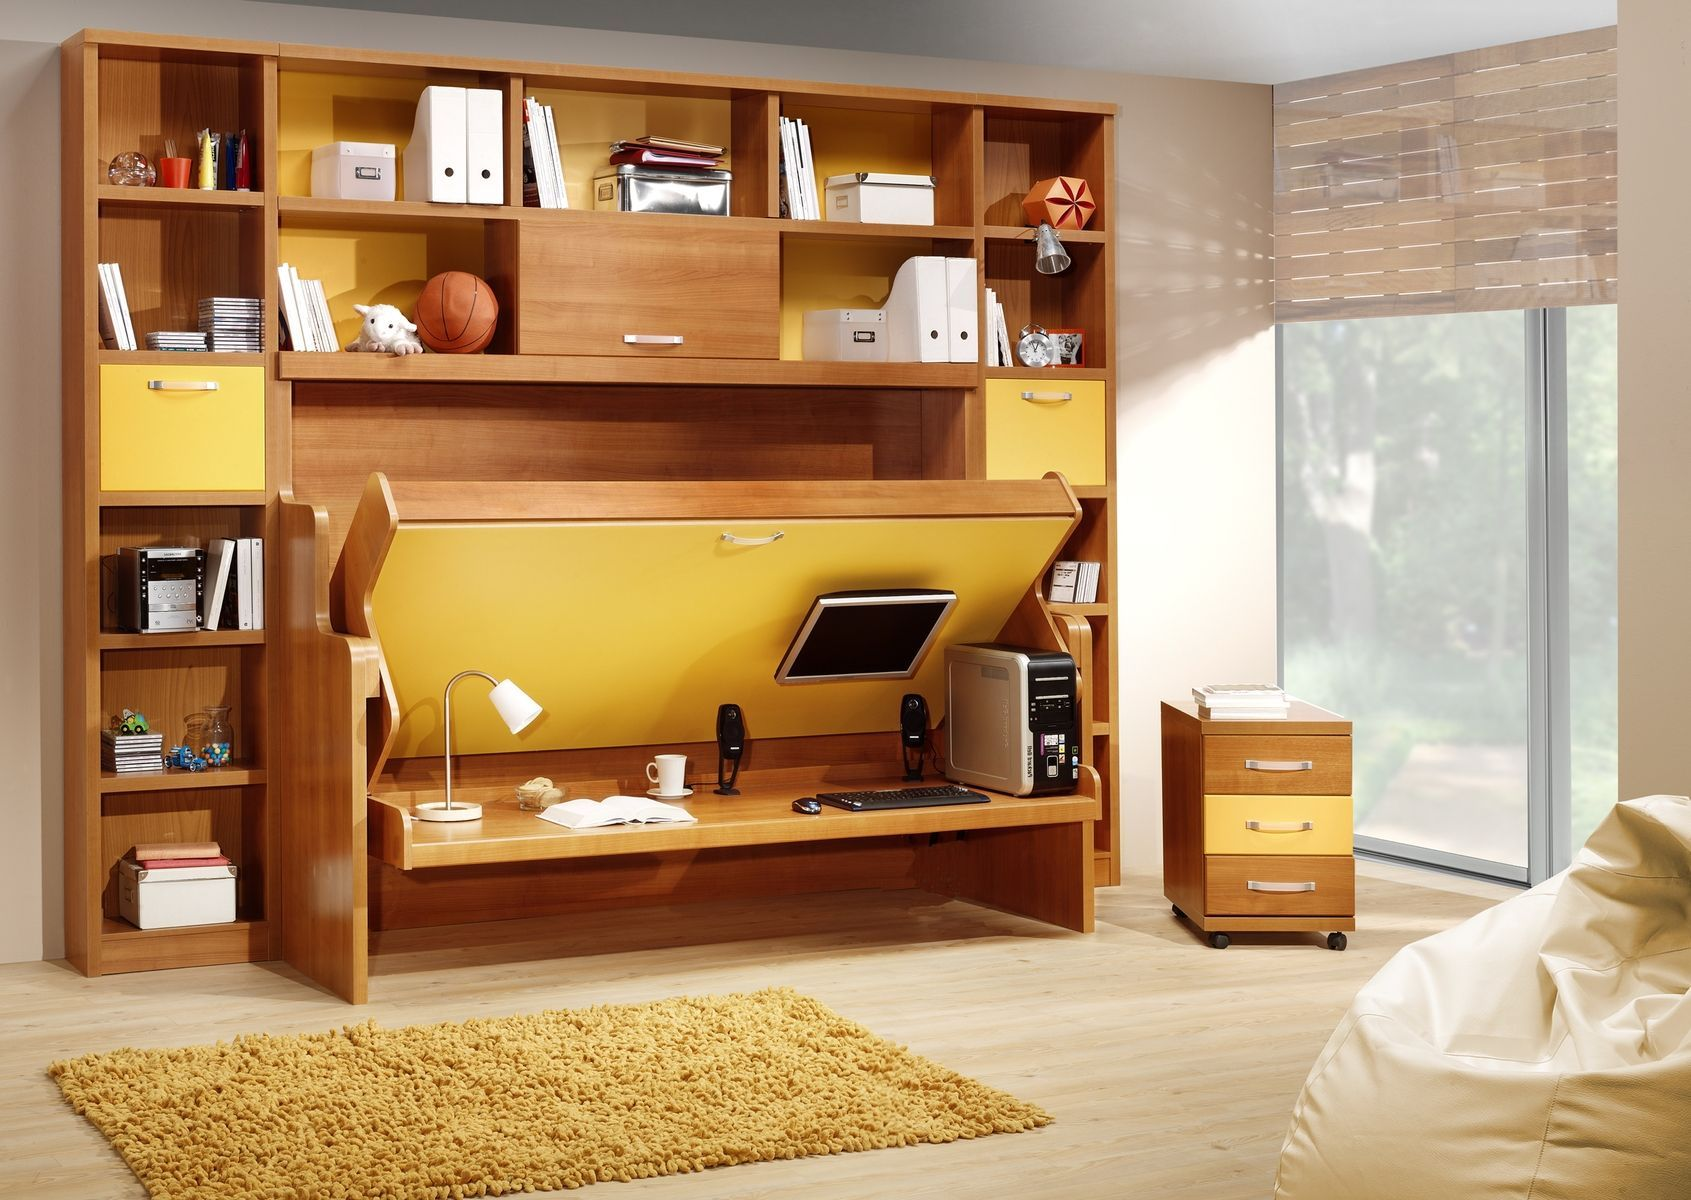 Excellent Design Ideas Of Convertible Furniture For Small ...